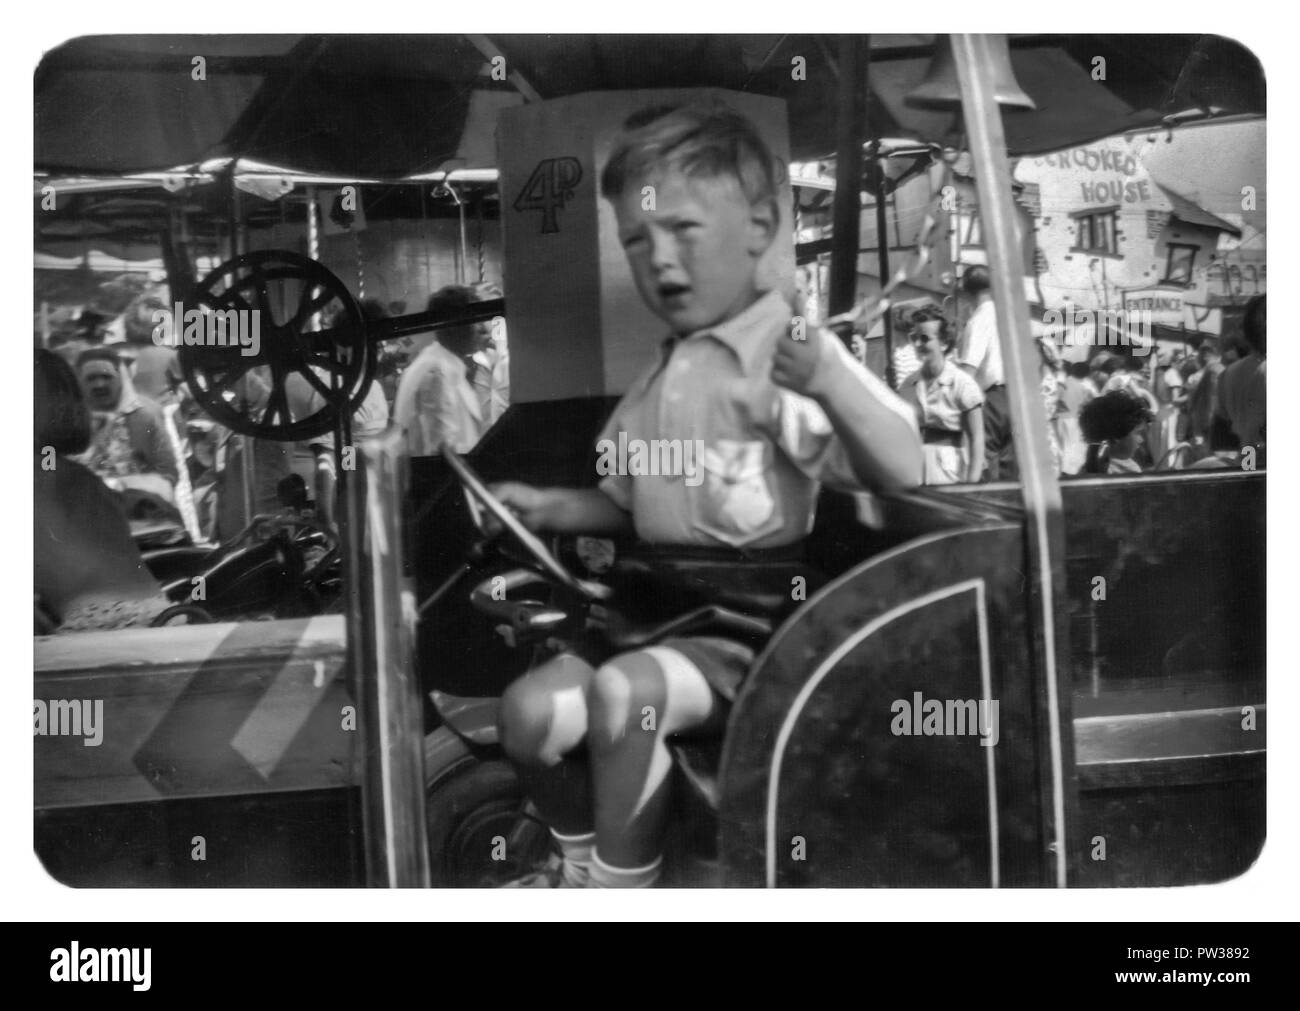 Young Caucasian boy aged 4 on a merry go round, Southend on sea Essex England UK, 1956 - Stock Image